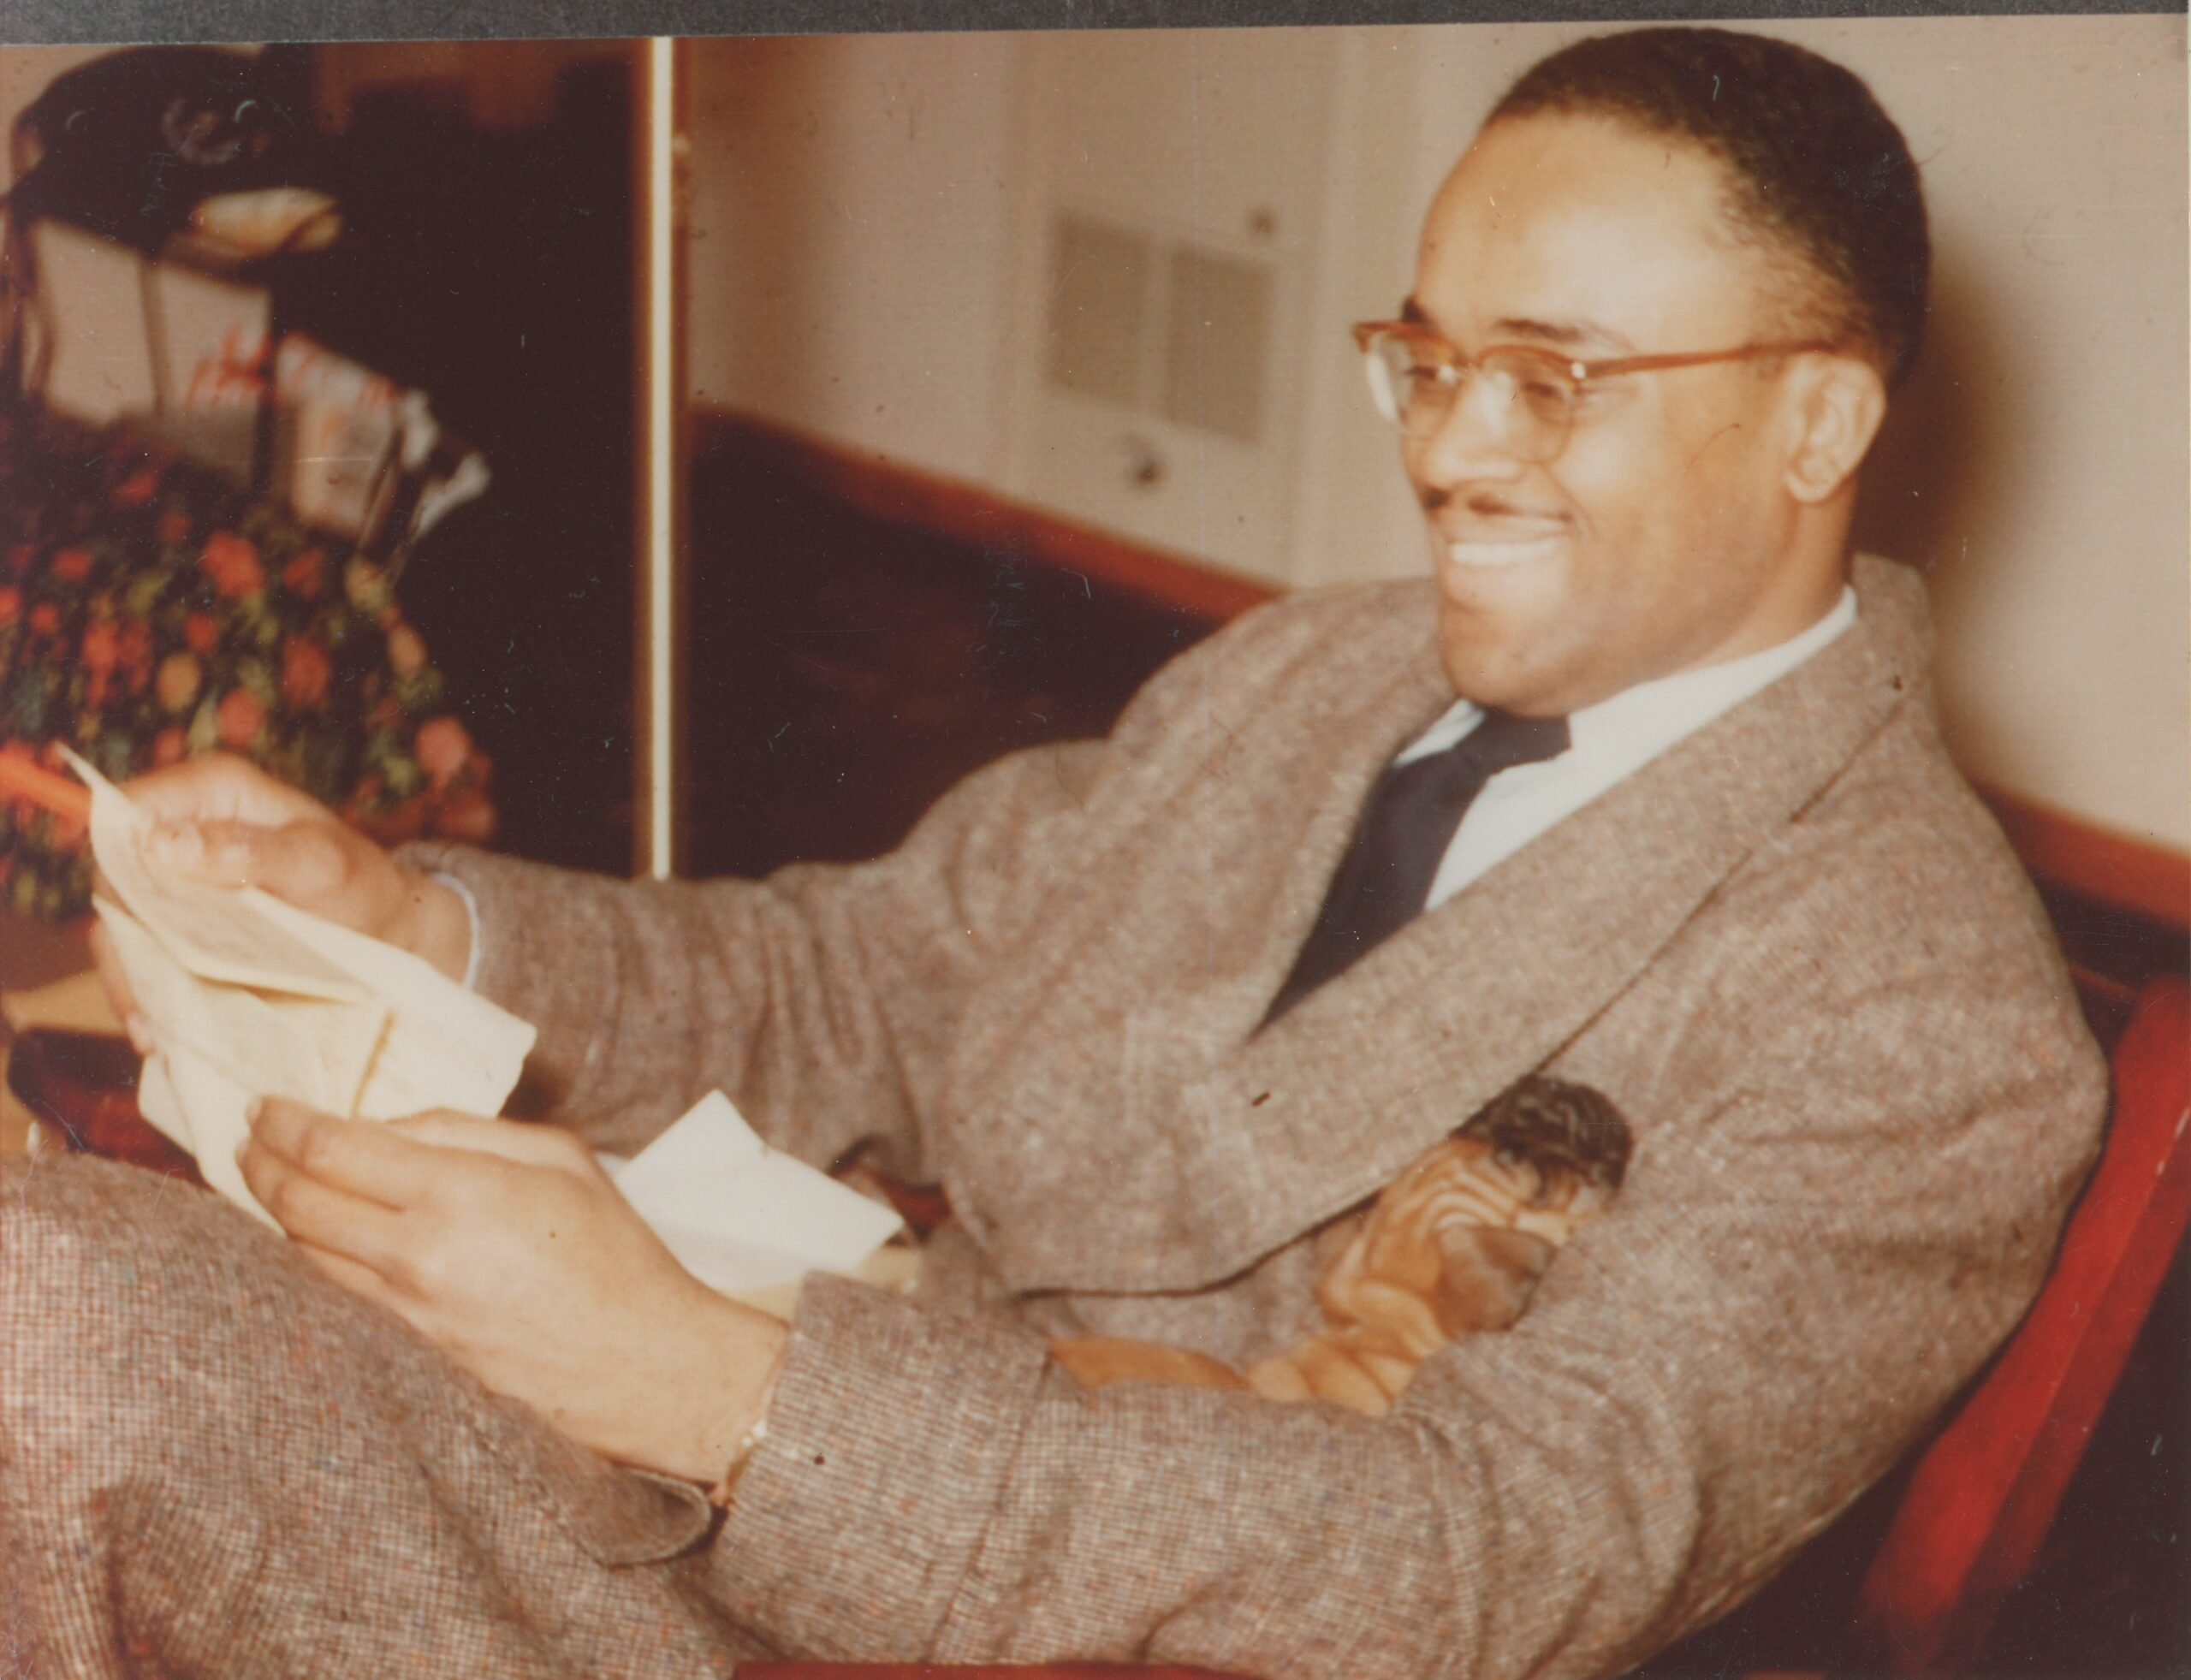 In 1947, Charles Blackwood became the first African-American to graduate from the University of Colorado medical school.